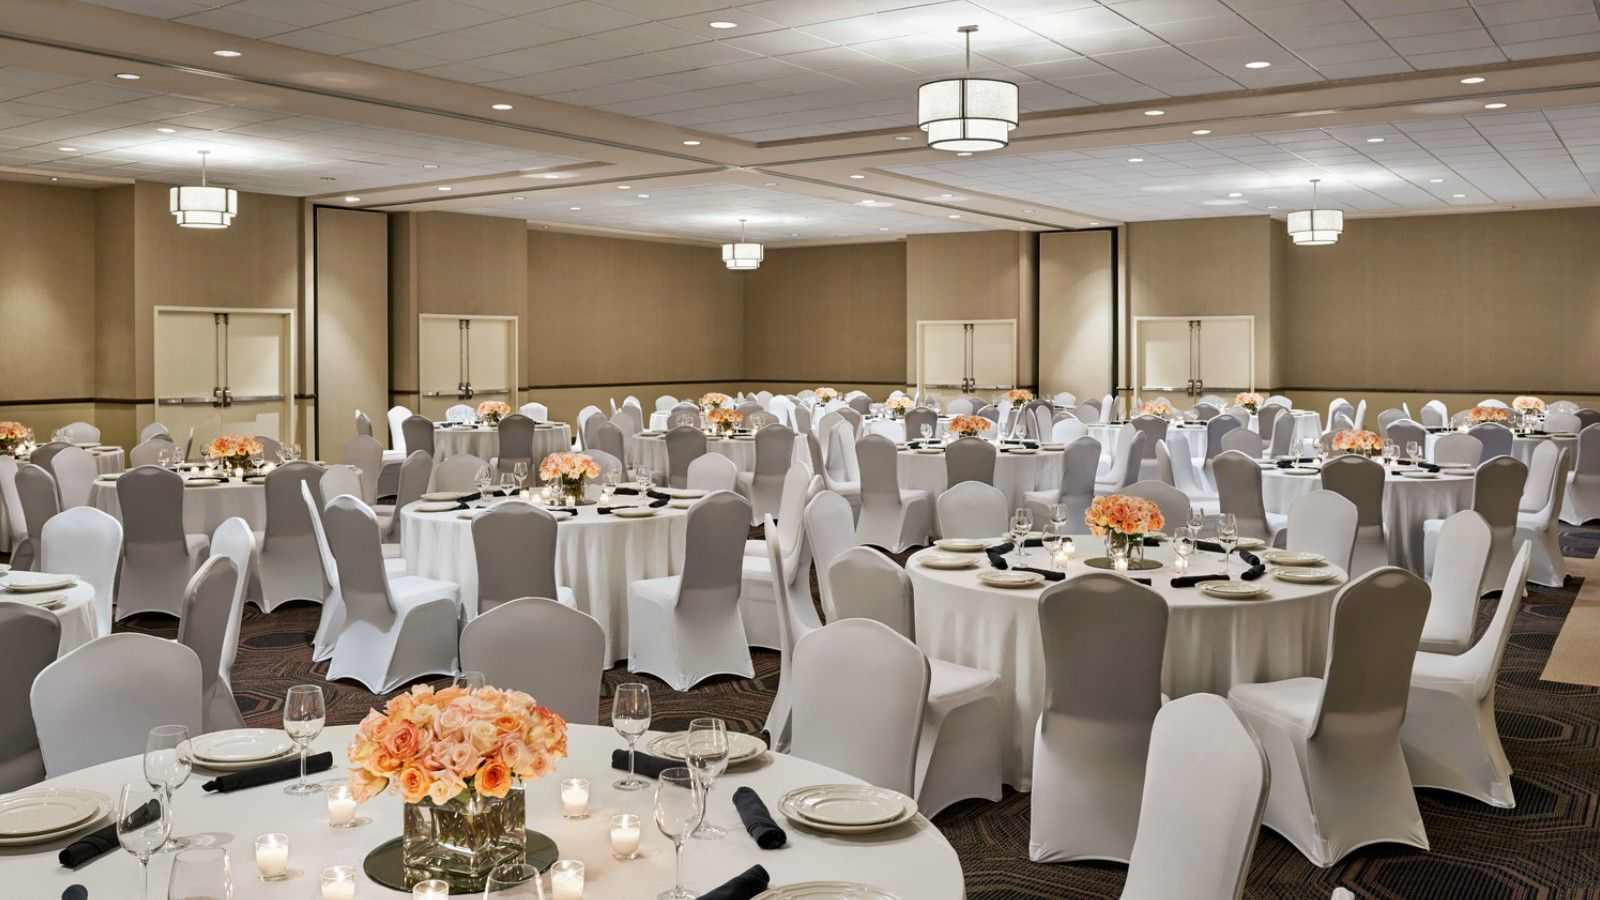 Little Rock Wedding Venues - Ballroom